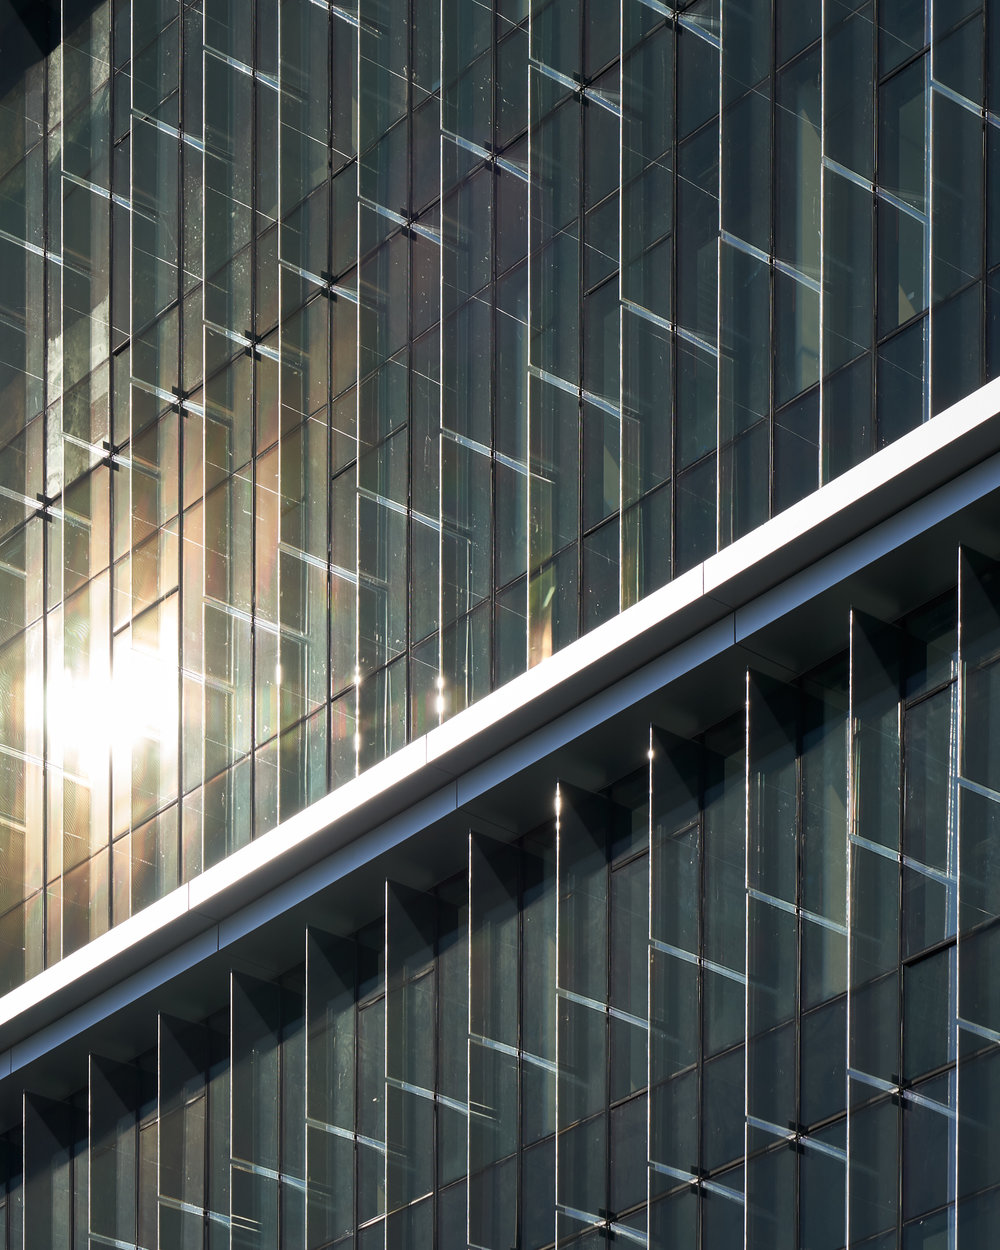 Southeast orientation of glass solar fins: produce energy from sunshine even with overcast skies